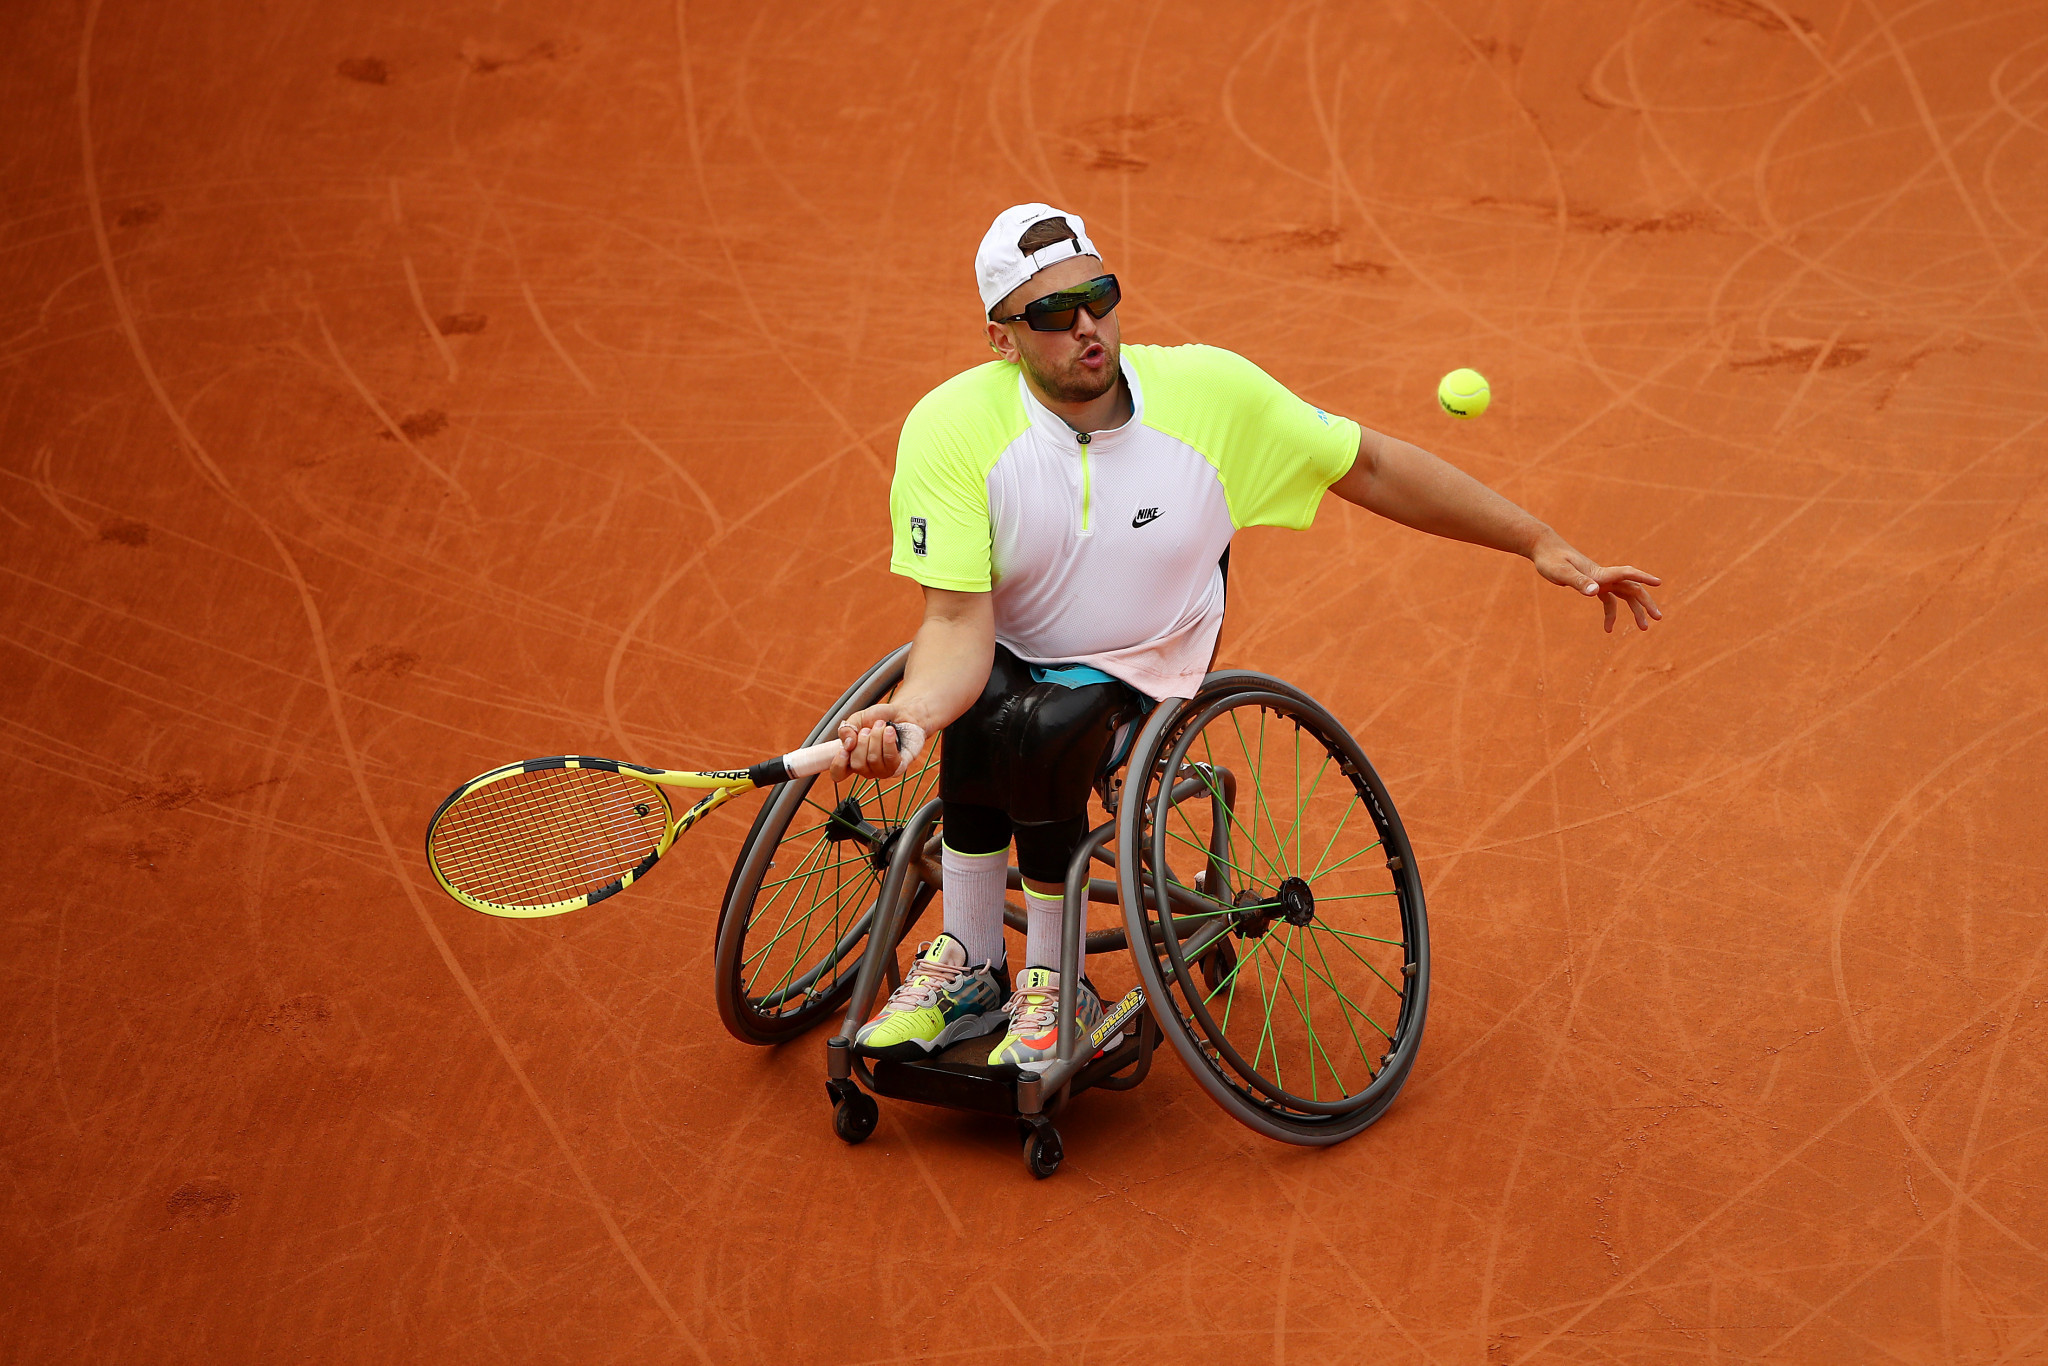 Top seed Dylan Alcott of Australia - a 10-time Grand Slam singles champion - awaits in the final after beating Dutchman Sam Schröder 6-2, 6-4 ©Getty Images